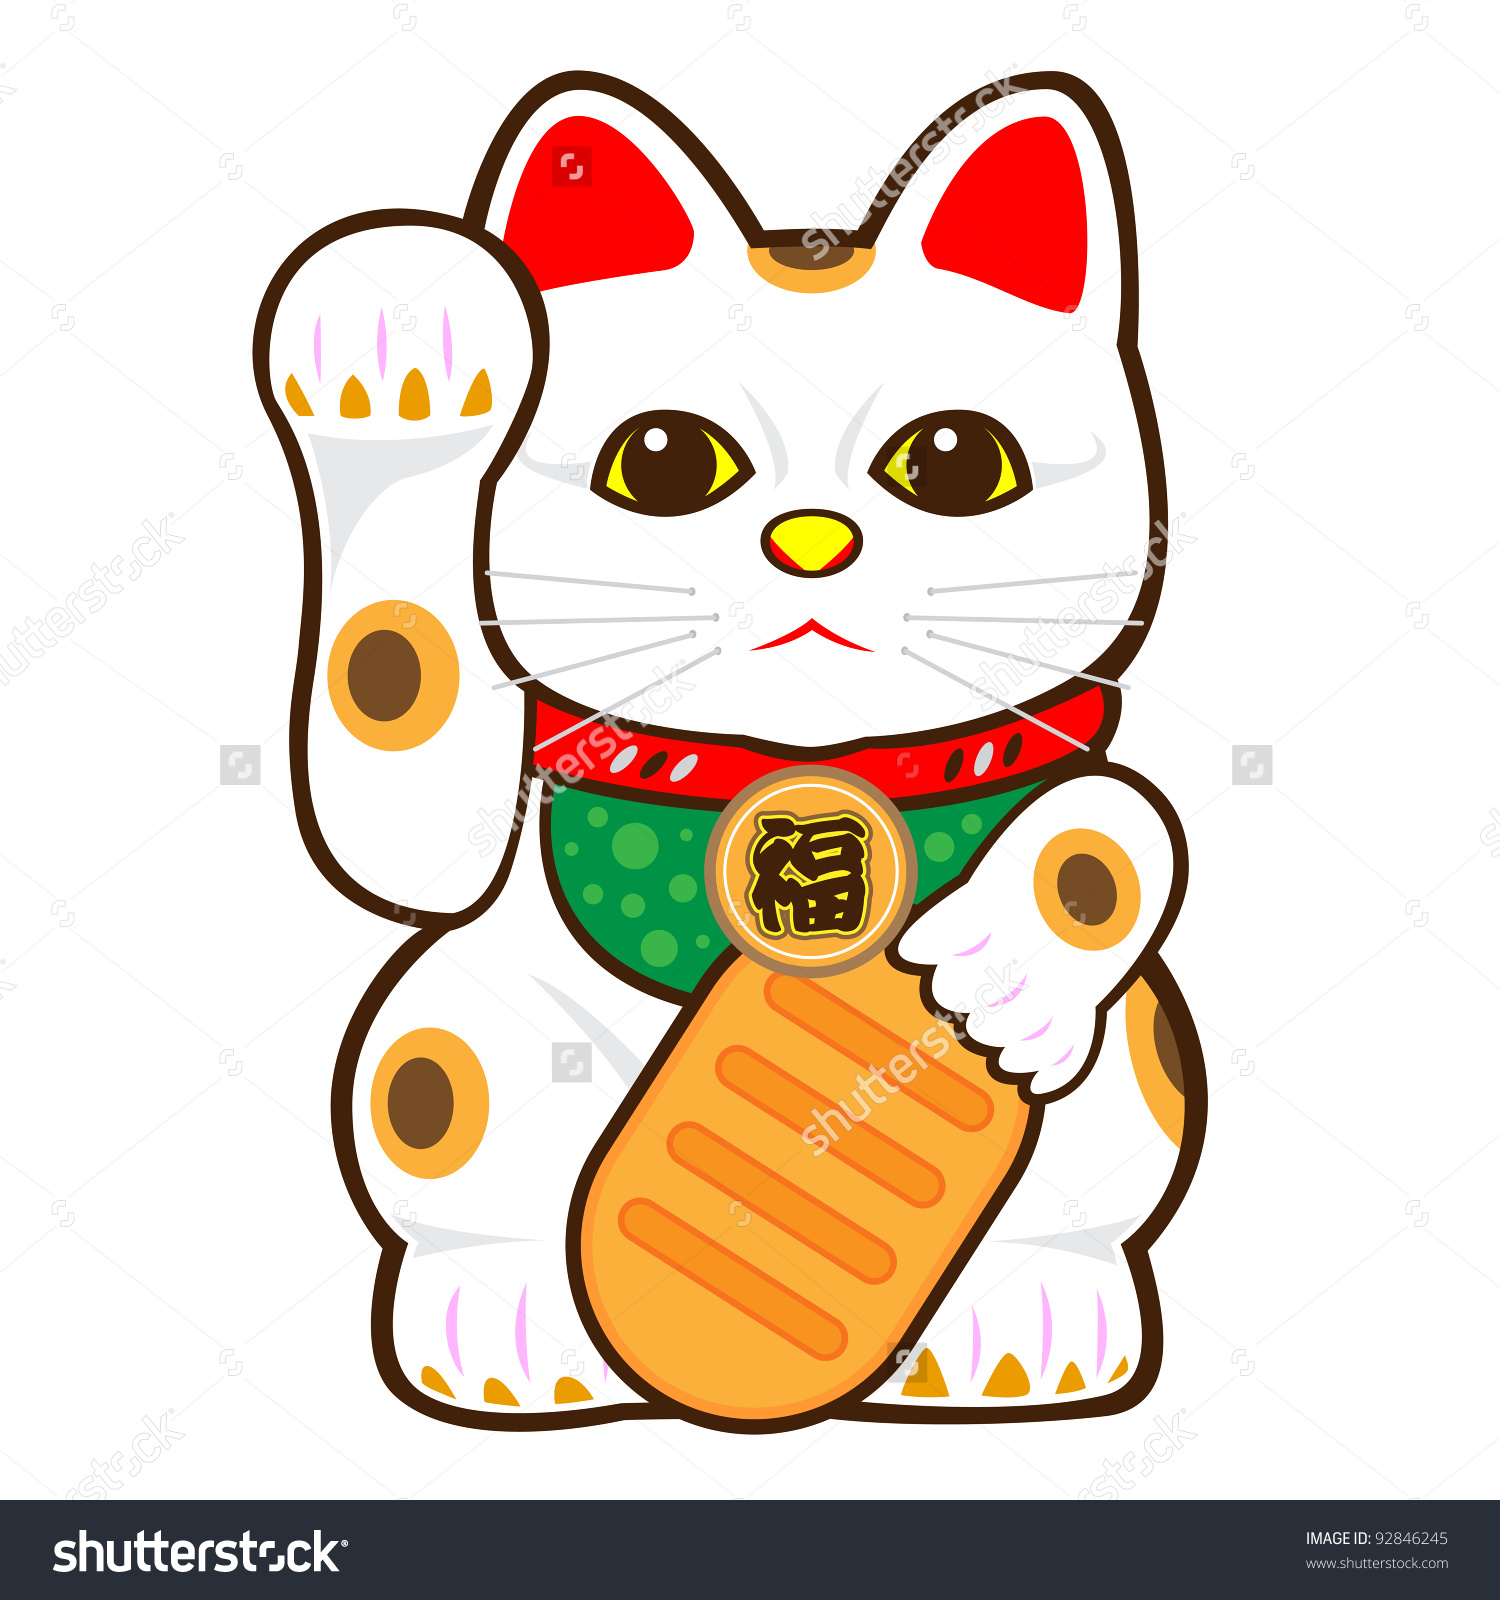 Lucky cat clipart clip royalty free library Fortune cat clipart - ClipartFox clip royalty free library